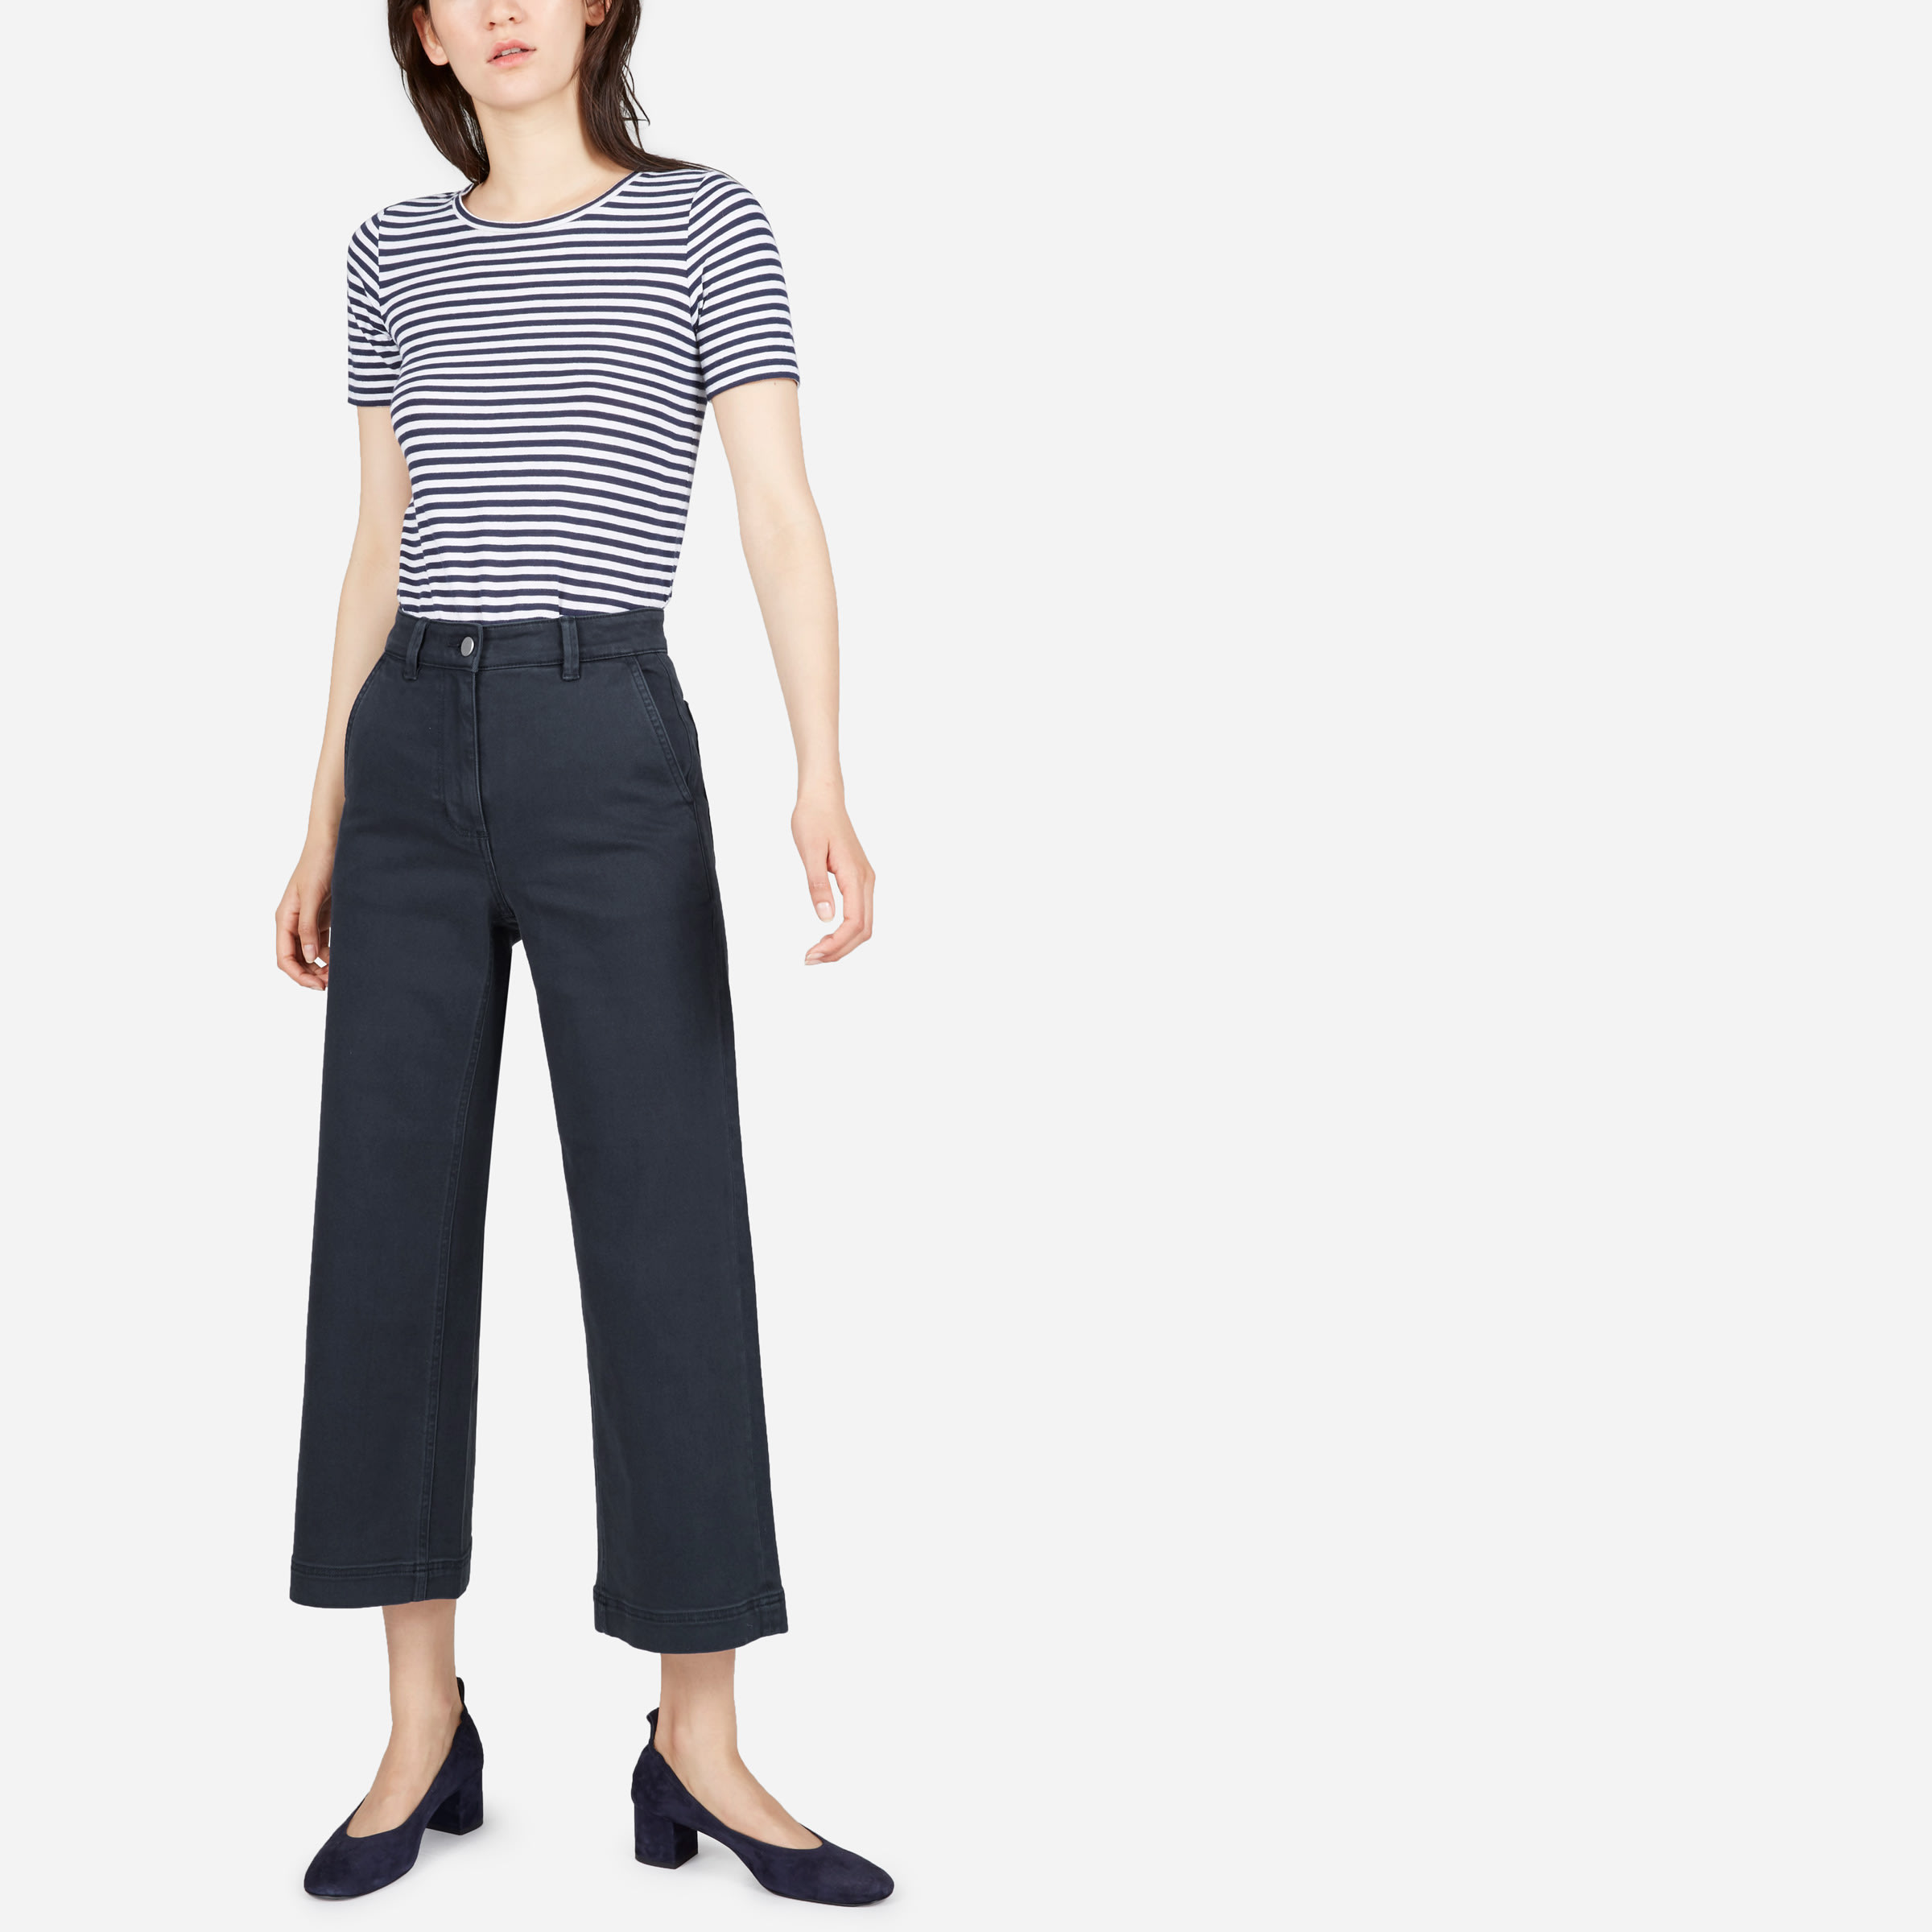 99f8d4dc939f Women's Wide Leg Crop Pant | Everlane